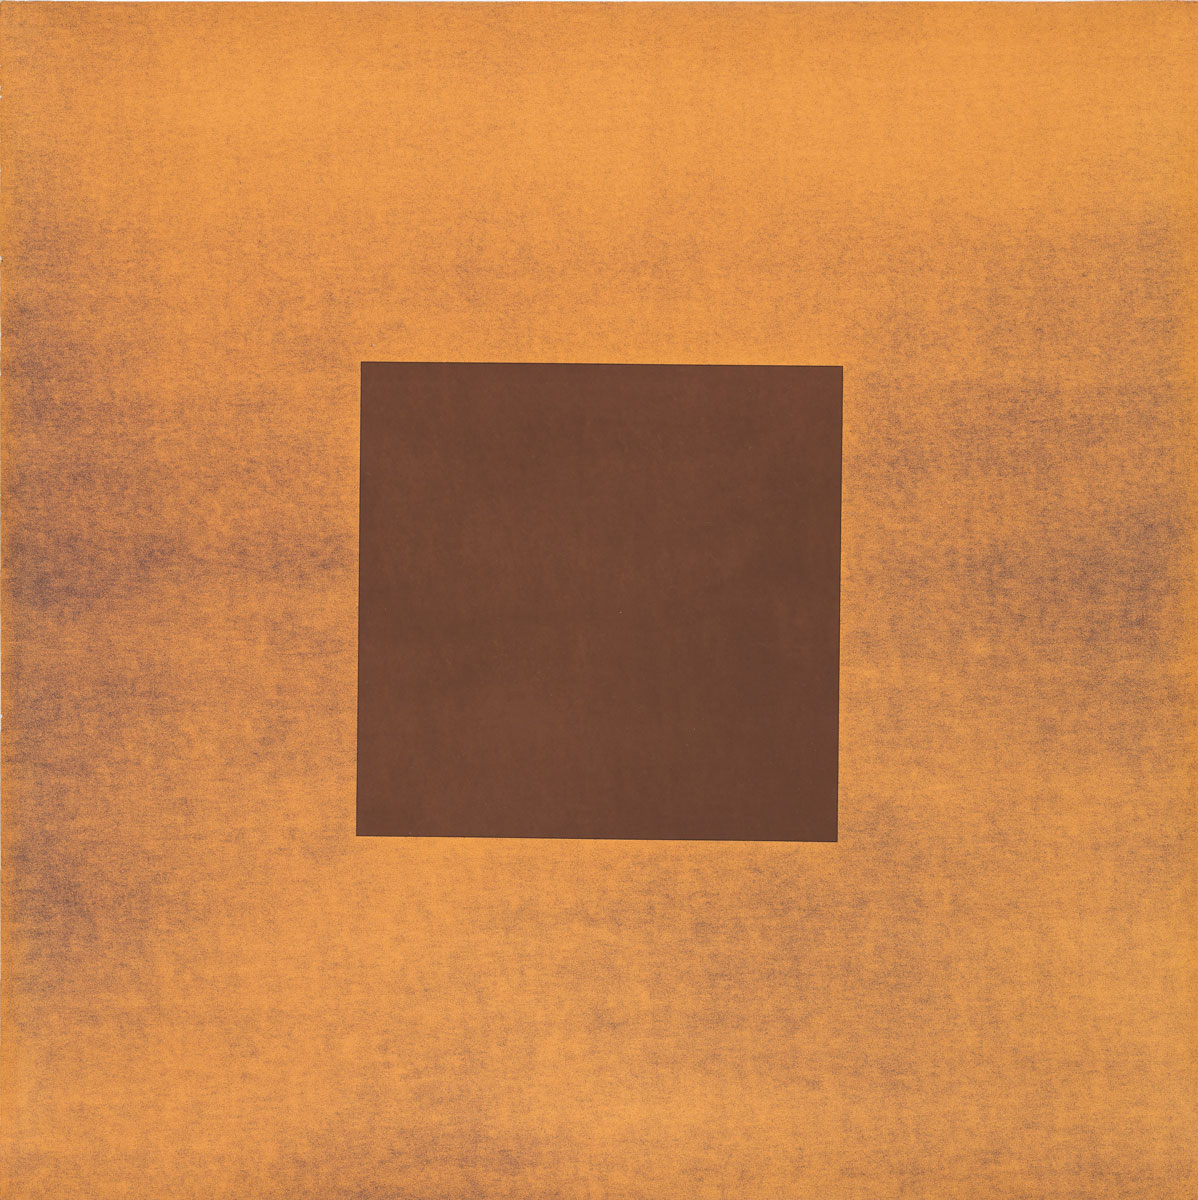 "PIERRE CORDIER. Chimigramme 26/8/77 III ""Minimal Photography"", 1977. Chemigramm. Unikat. 50 x 50 cm"